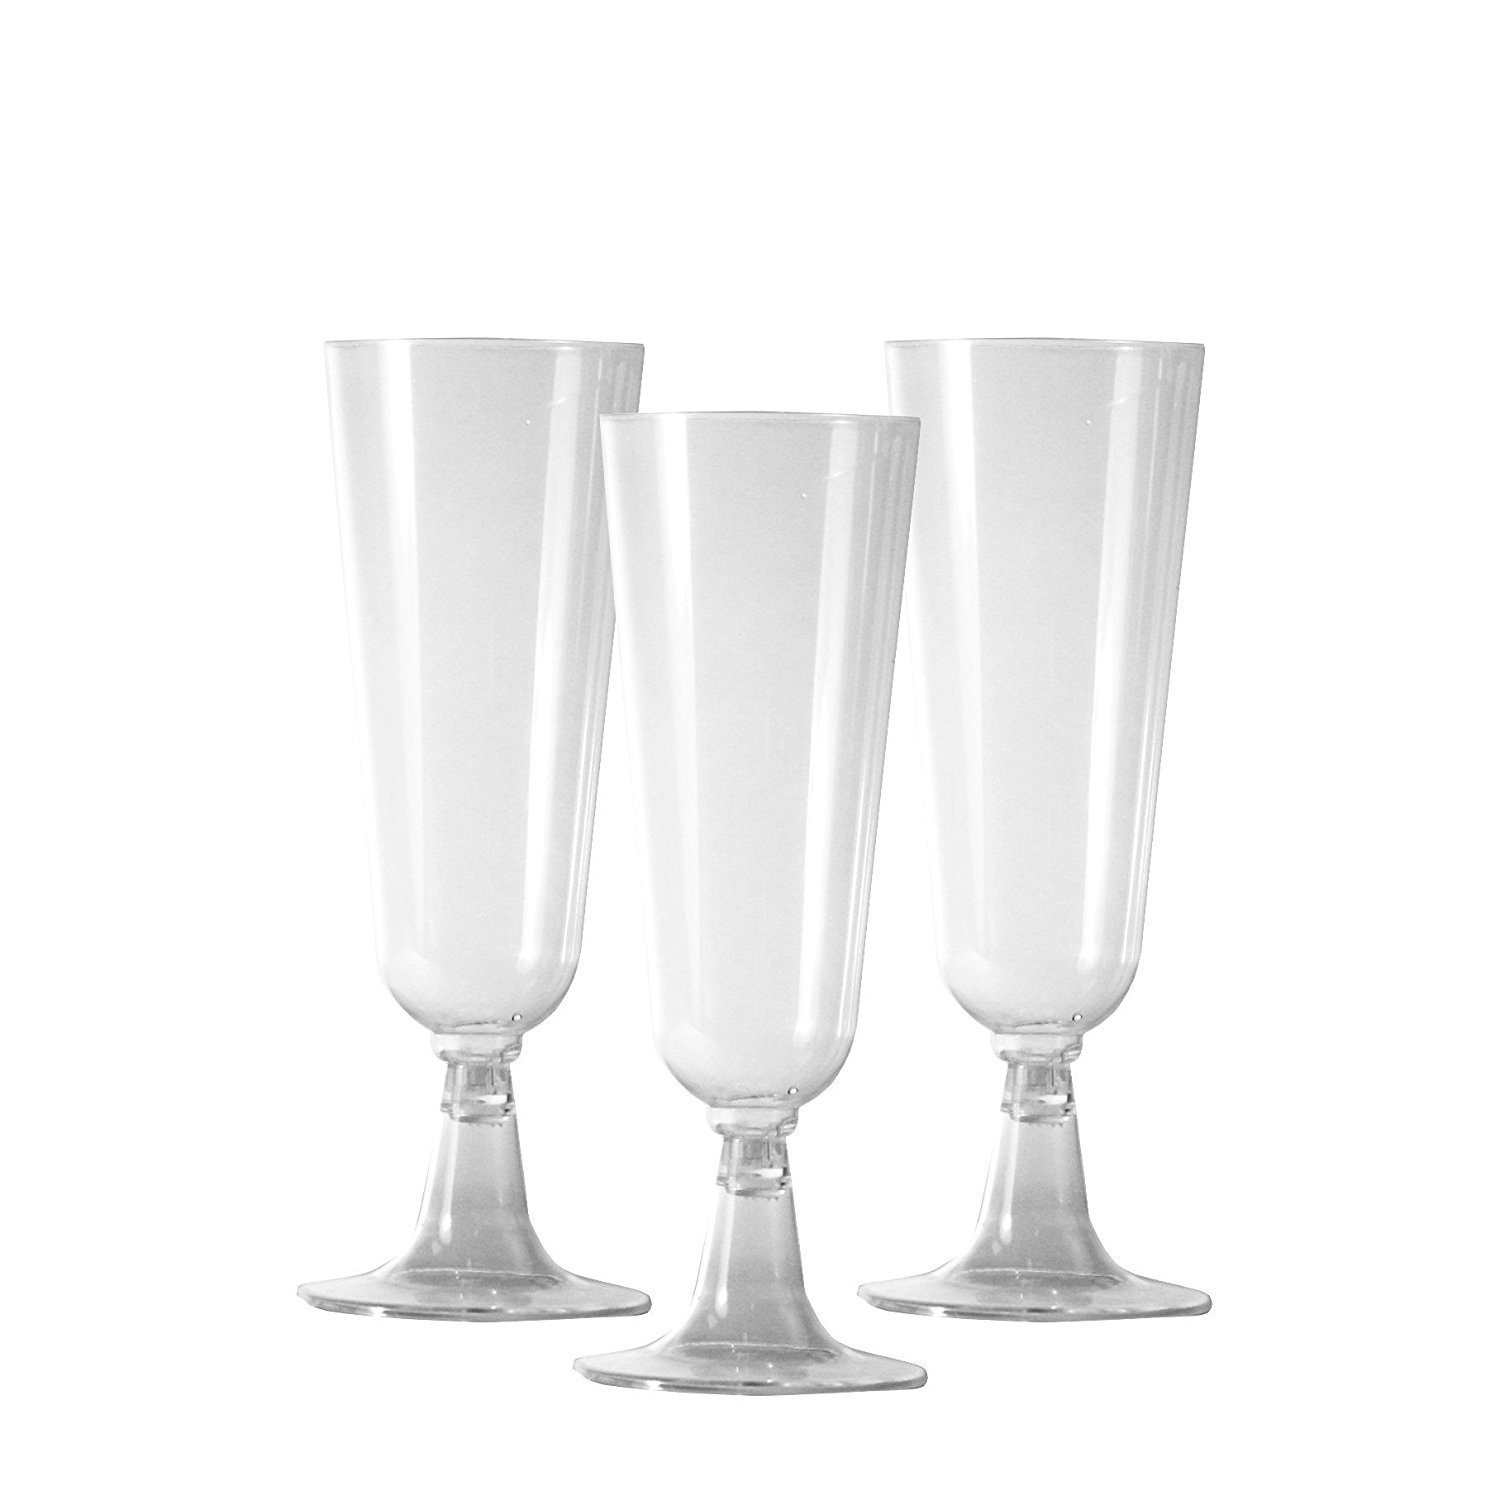 Party Essentials Two-Piece Hard Plastic Mimosa/Champagne Flutes, 5 oz, Clear (40 Count)